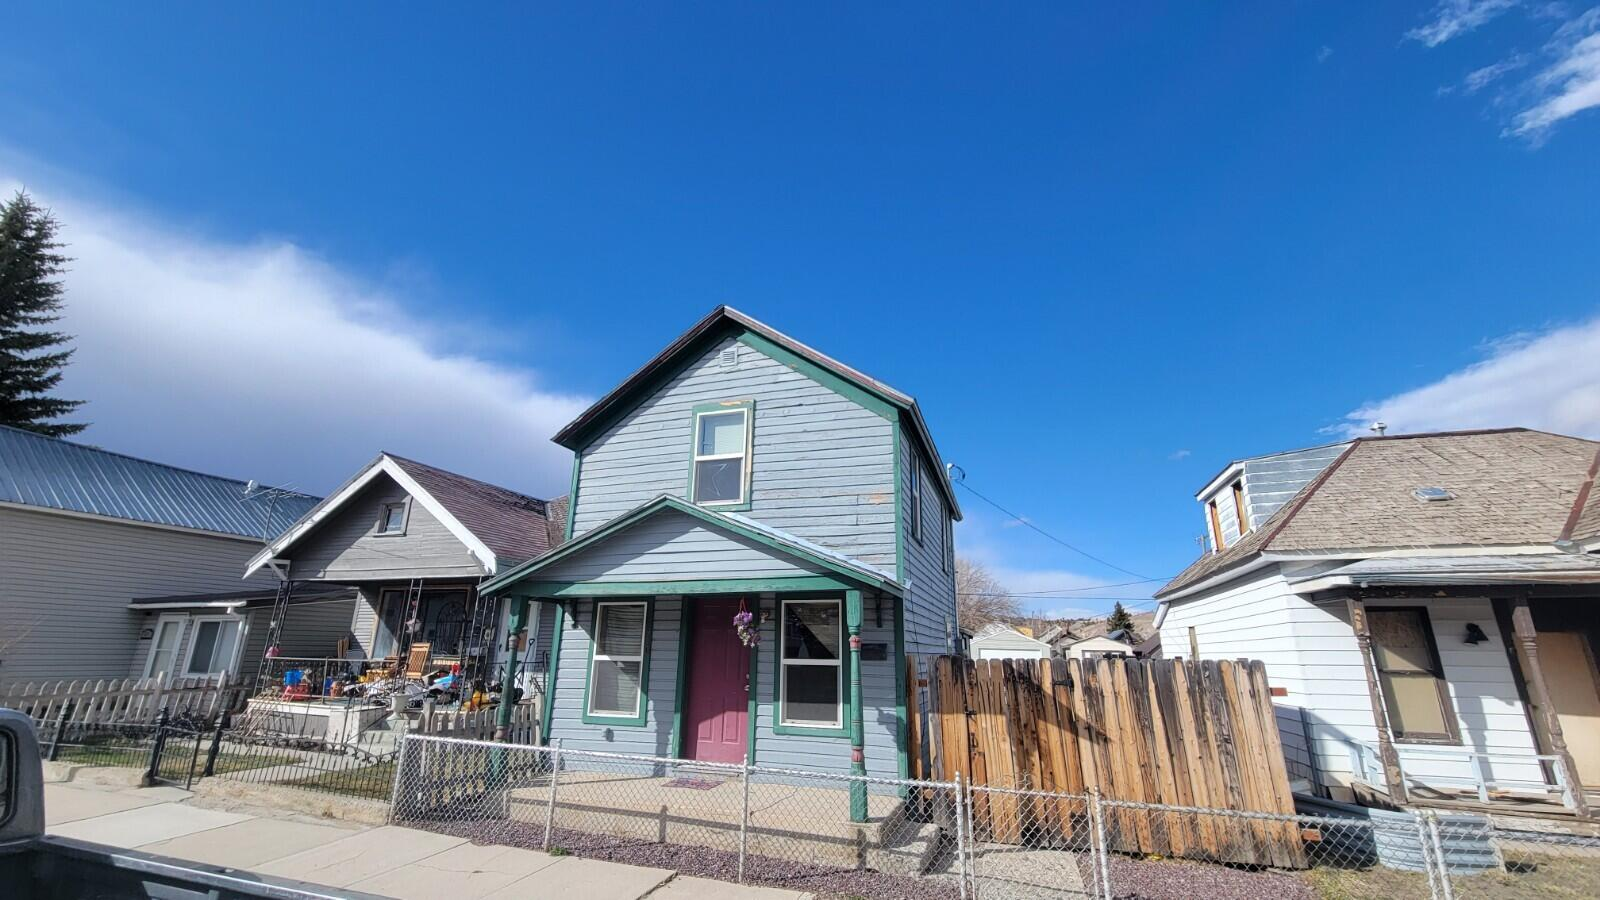 Cute house in Anaconda. Nice lot. Spacious upstairs has 1 bedroom and bonus space that could act as a second non-conforming bedroom. 1 full bathroom. Recently remodeled. Conveniently located. Call Robert Medof at 406-203-7621, or your real estate professional.